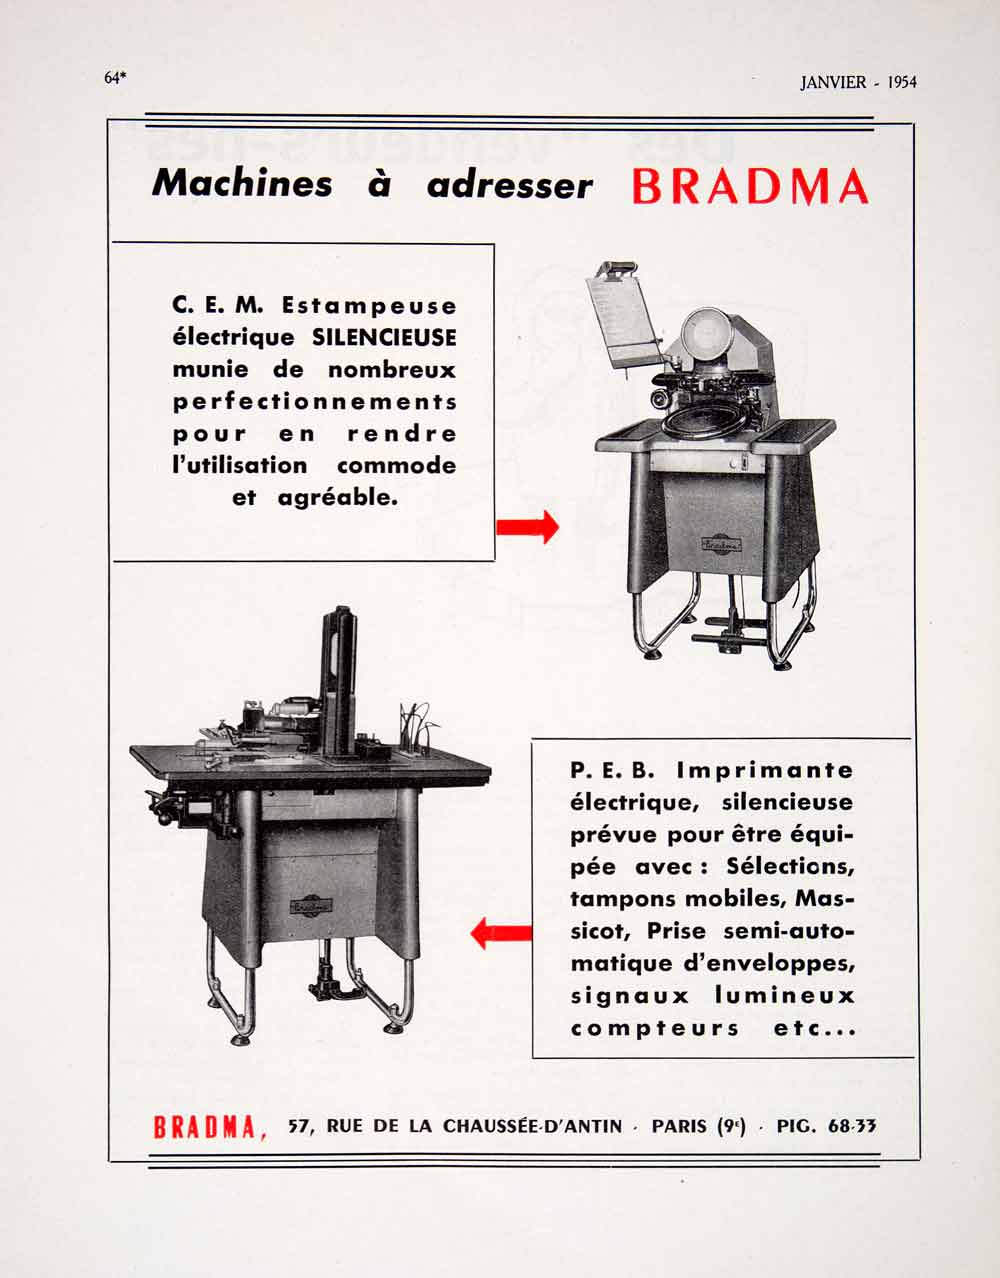 1955 Ad Bradma French Machine Paris France Advertisement Rue de la Chaussee VEN2